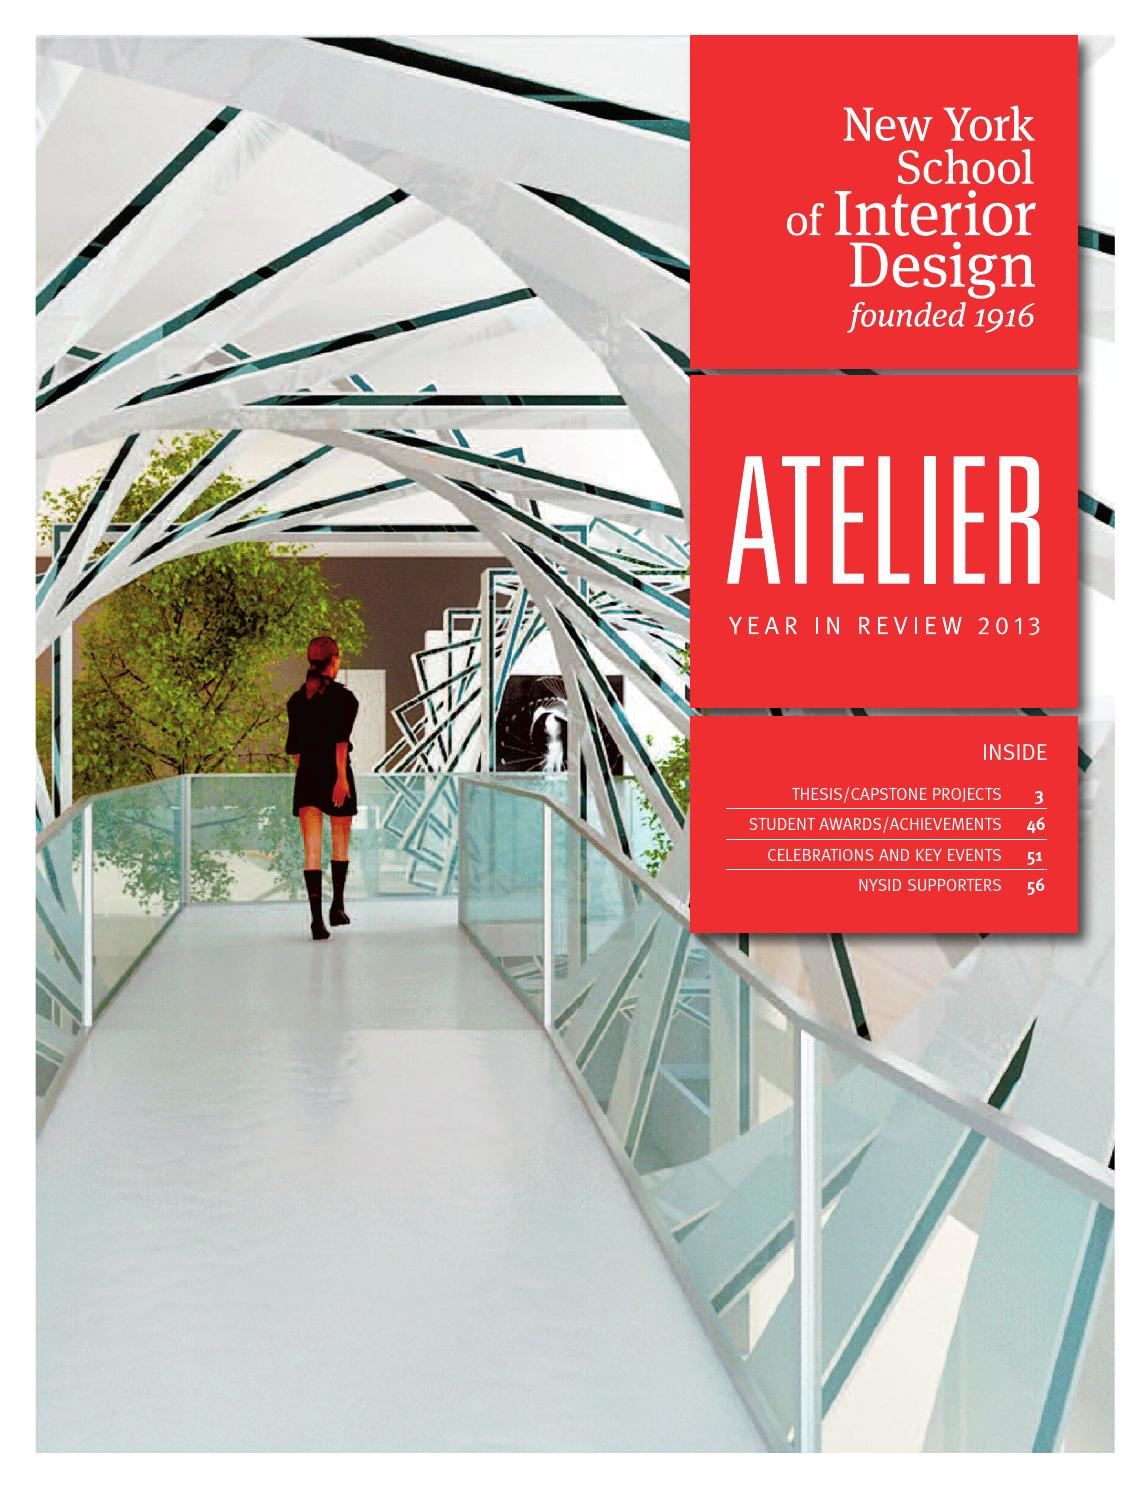 Atelier Year In Review 2013 By New York School Of Interior Design Issuu